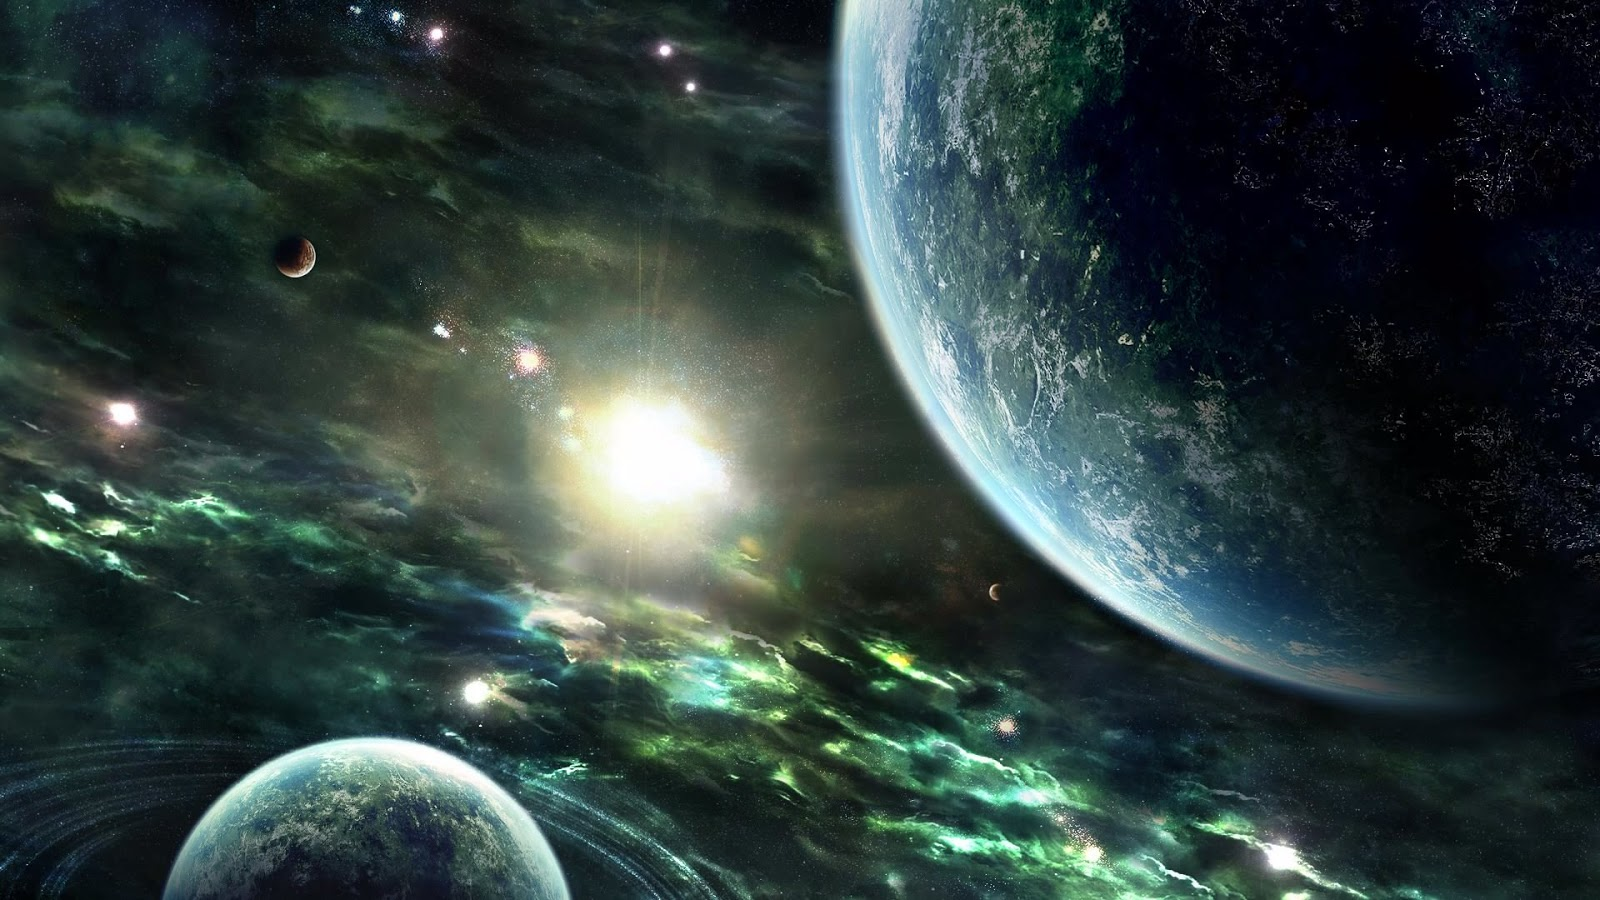 Alien Planets in Space HD Backgrounds high resolution